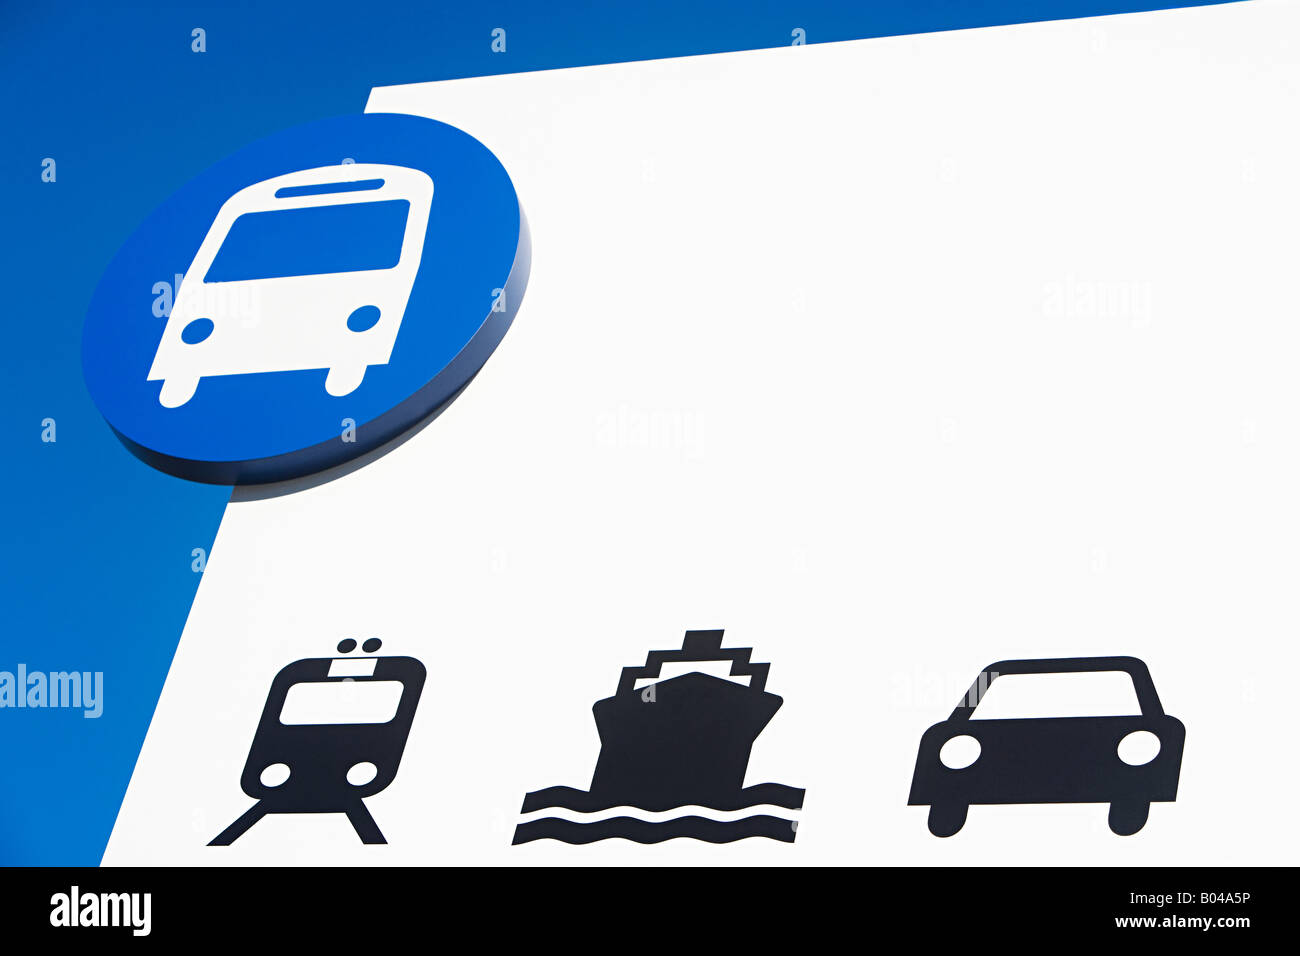 Transport sign - Stock Image